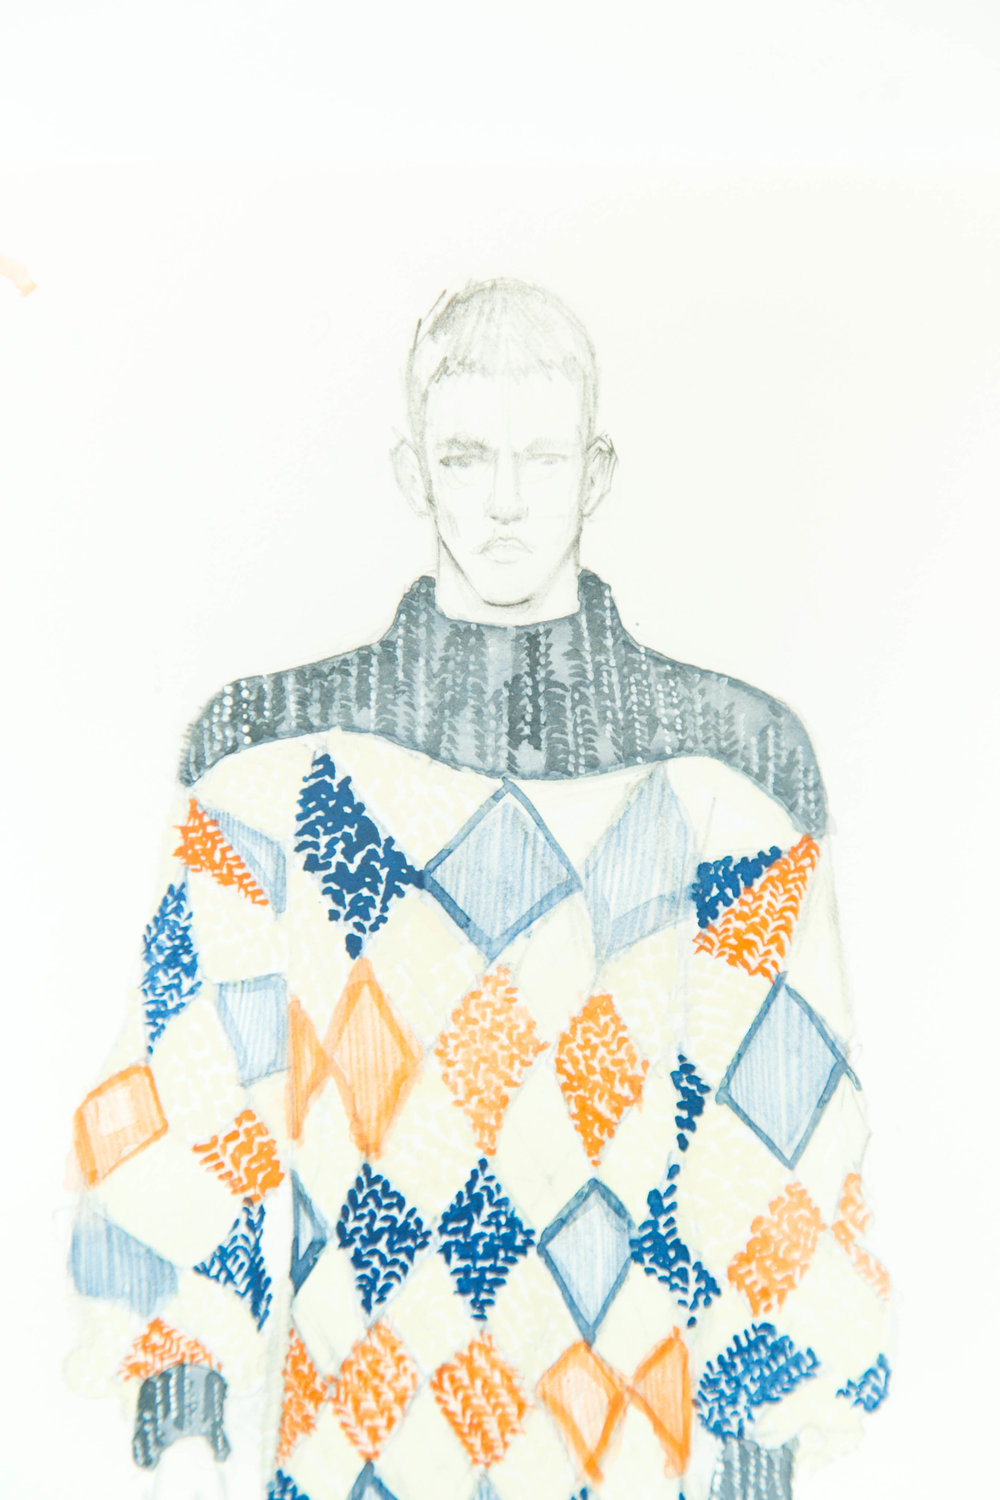 Victoria-Riza | Fashion Illustrator | Sibling Fall 2017 Menswear